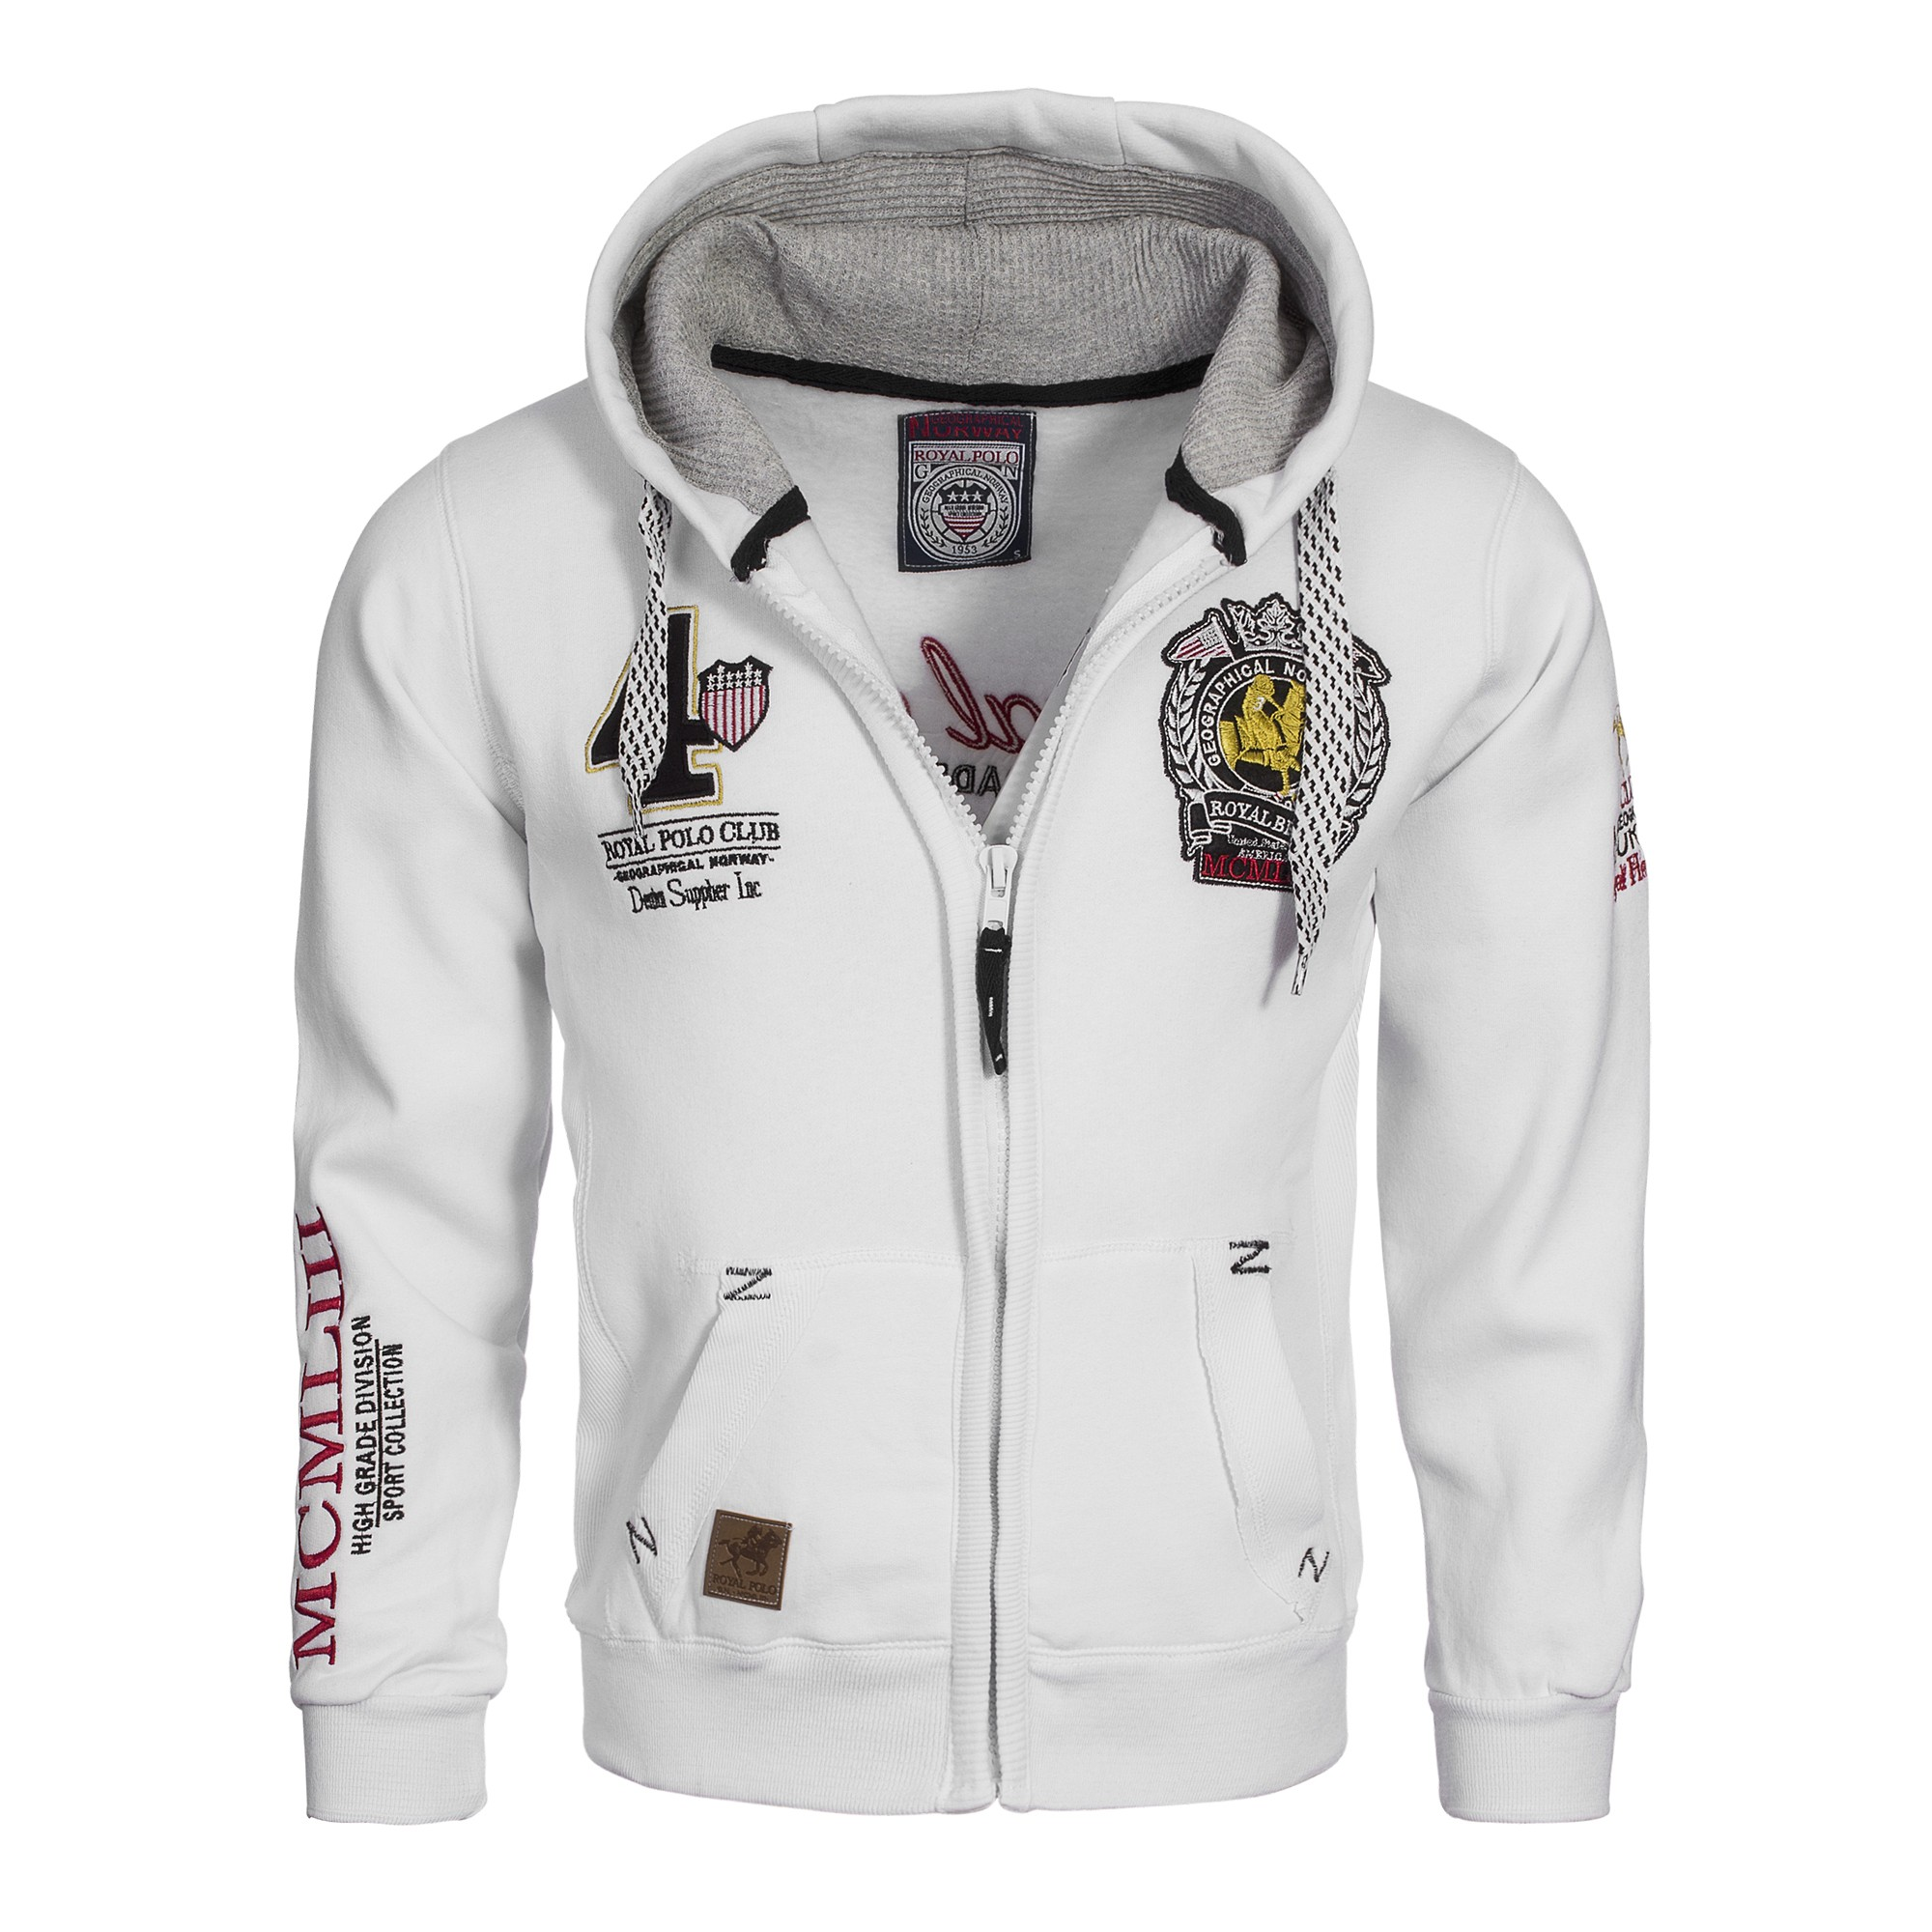 geographical norway finatti hoodie sweatjacke jacke pullover gr s xxl ebay. Black Bedroom Furniture Sets. Home Design Ideas